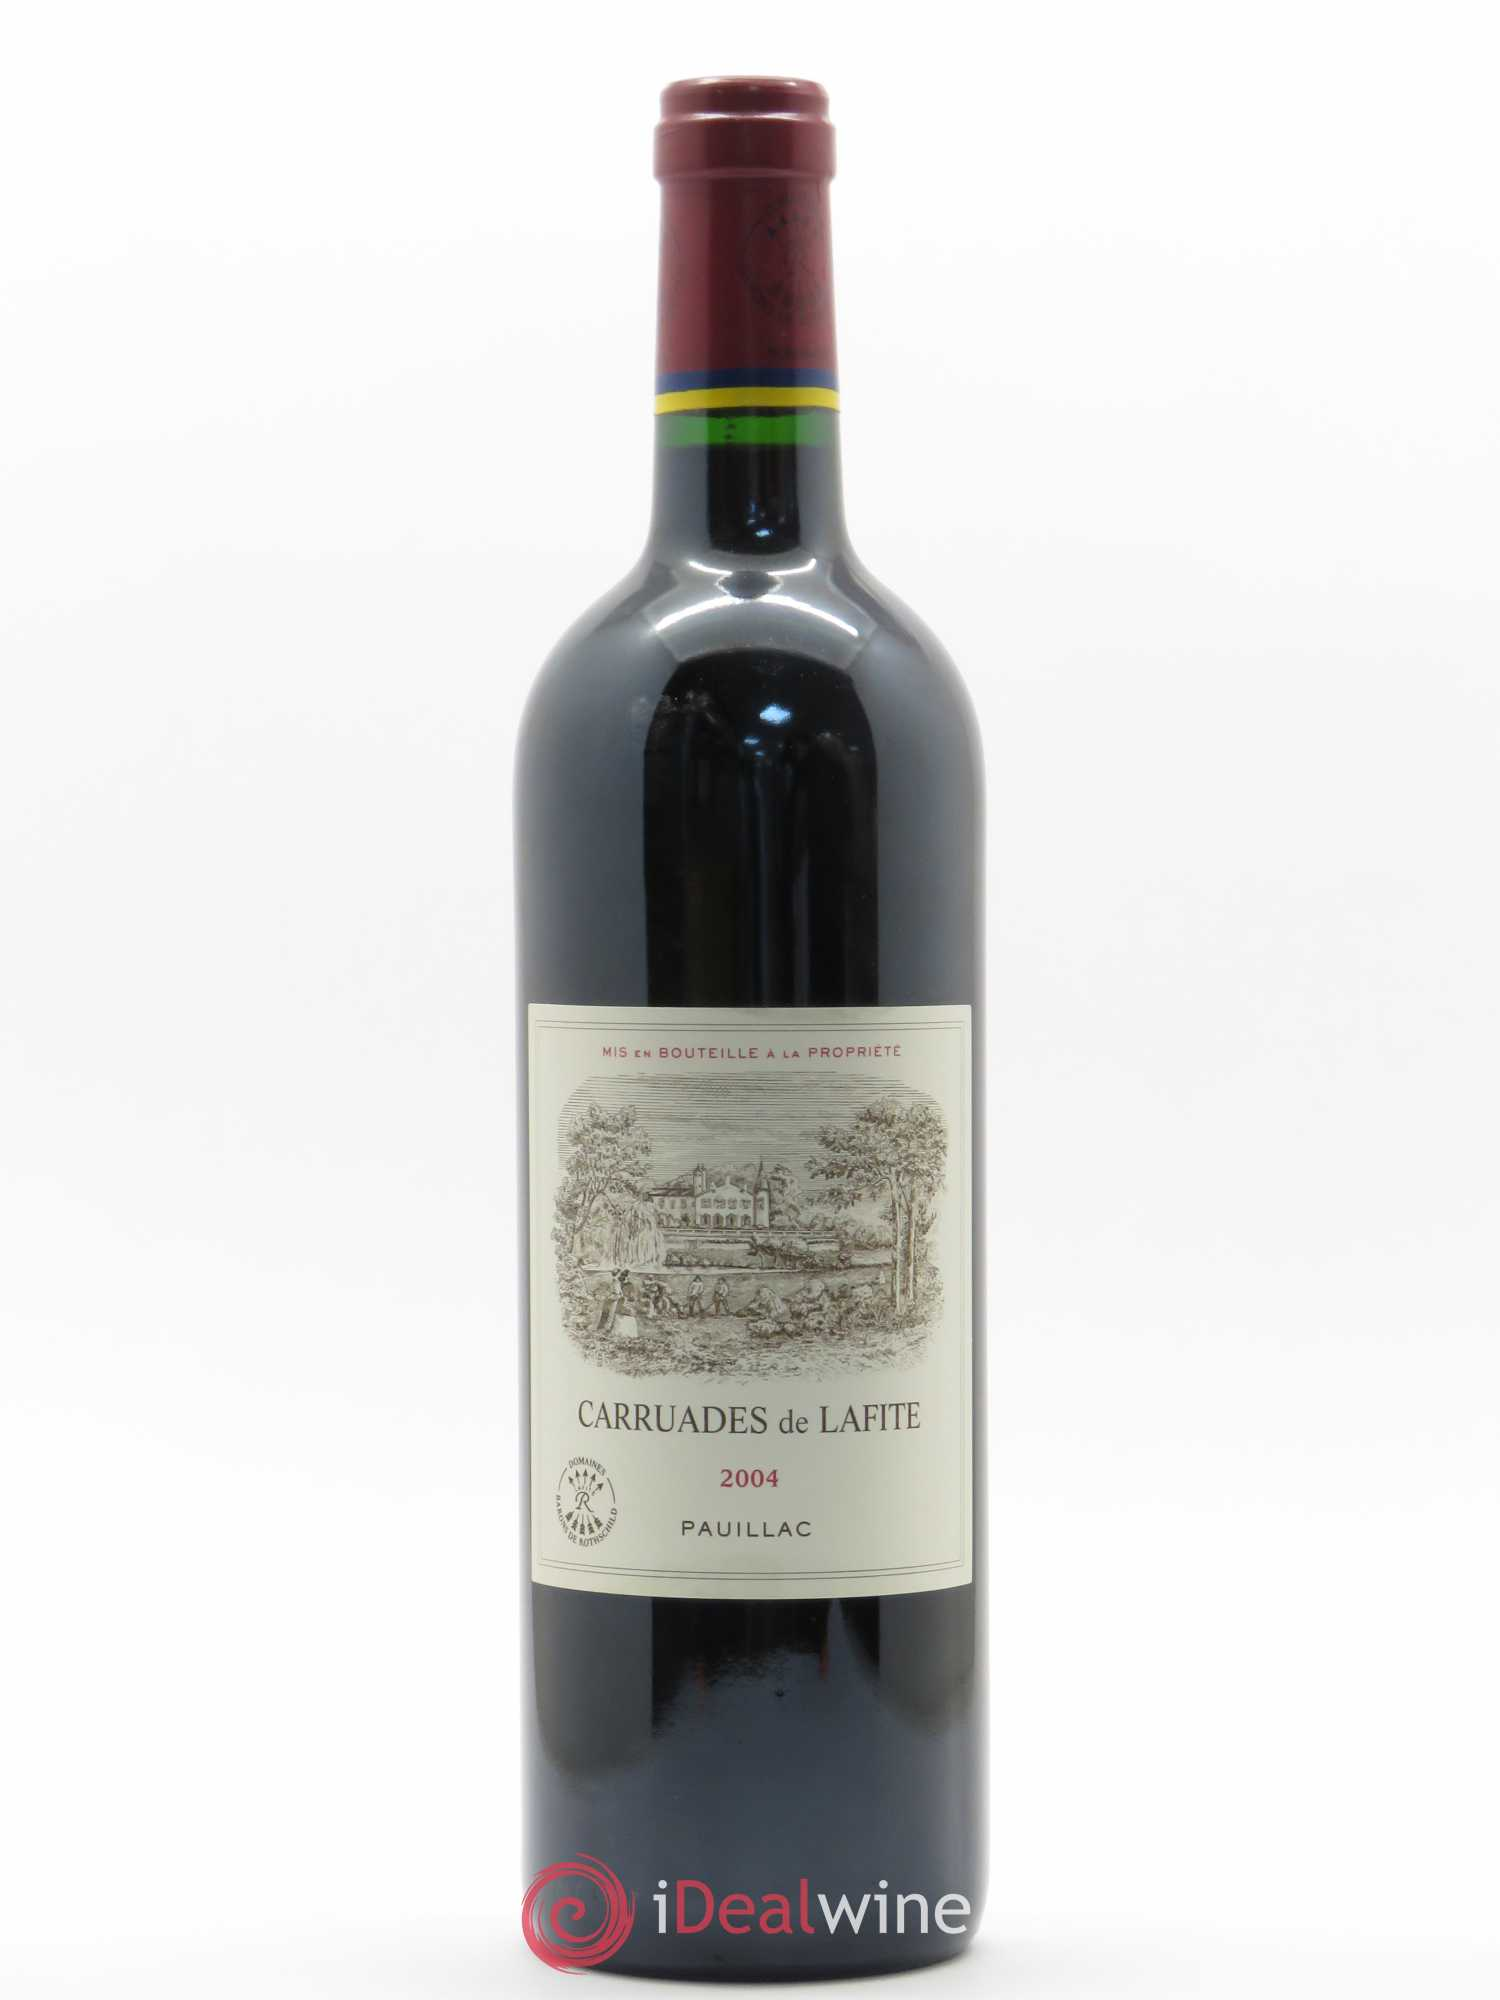 Carruades de Lafite Rothschild Second vin  2004 - Lot of 1 Bottle